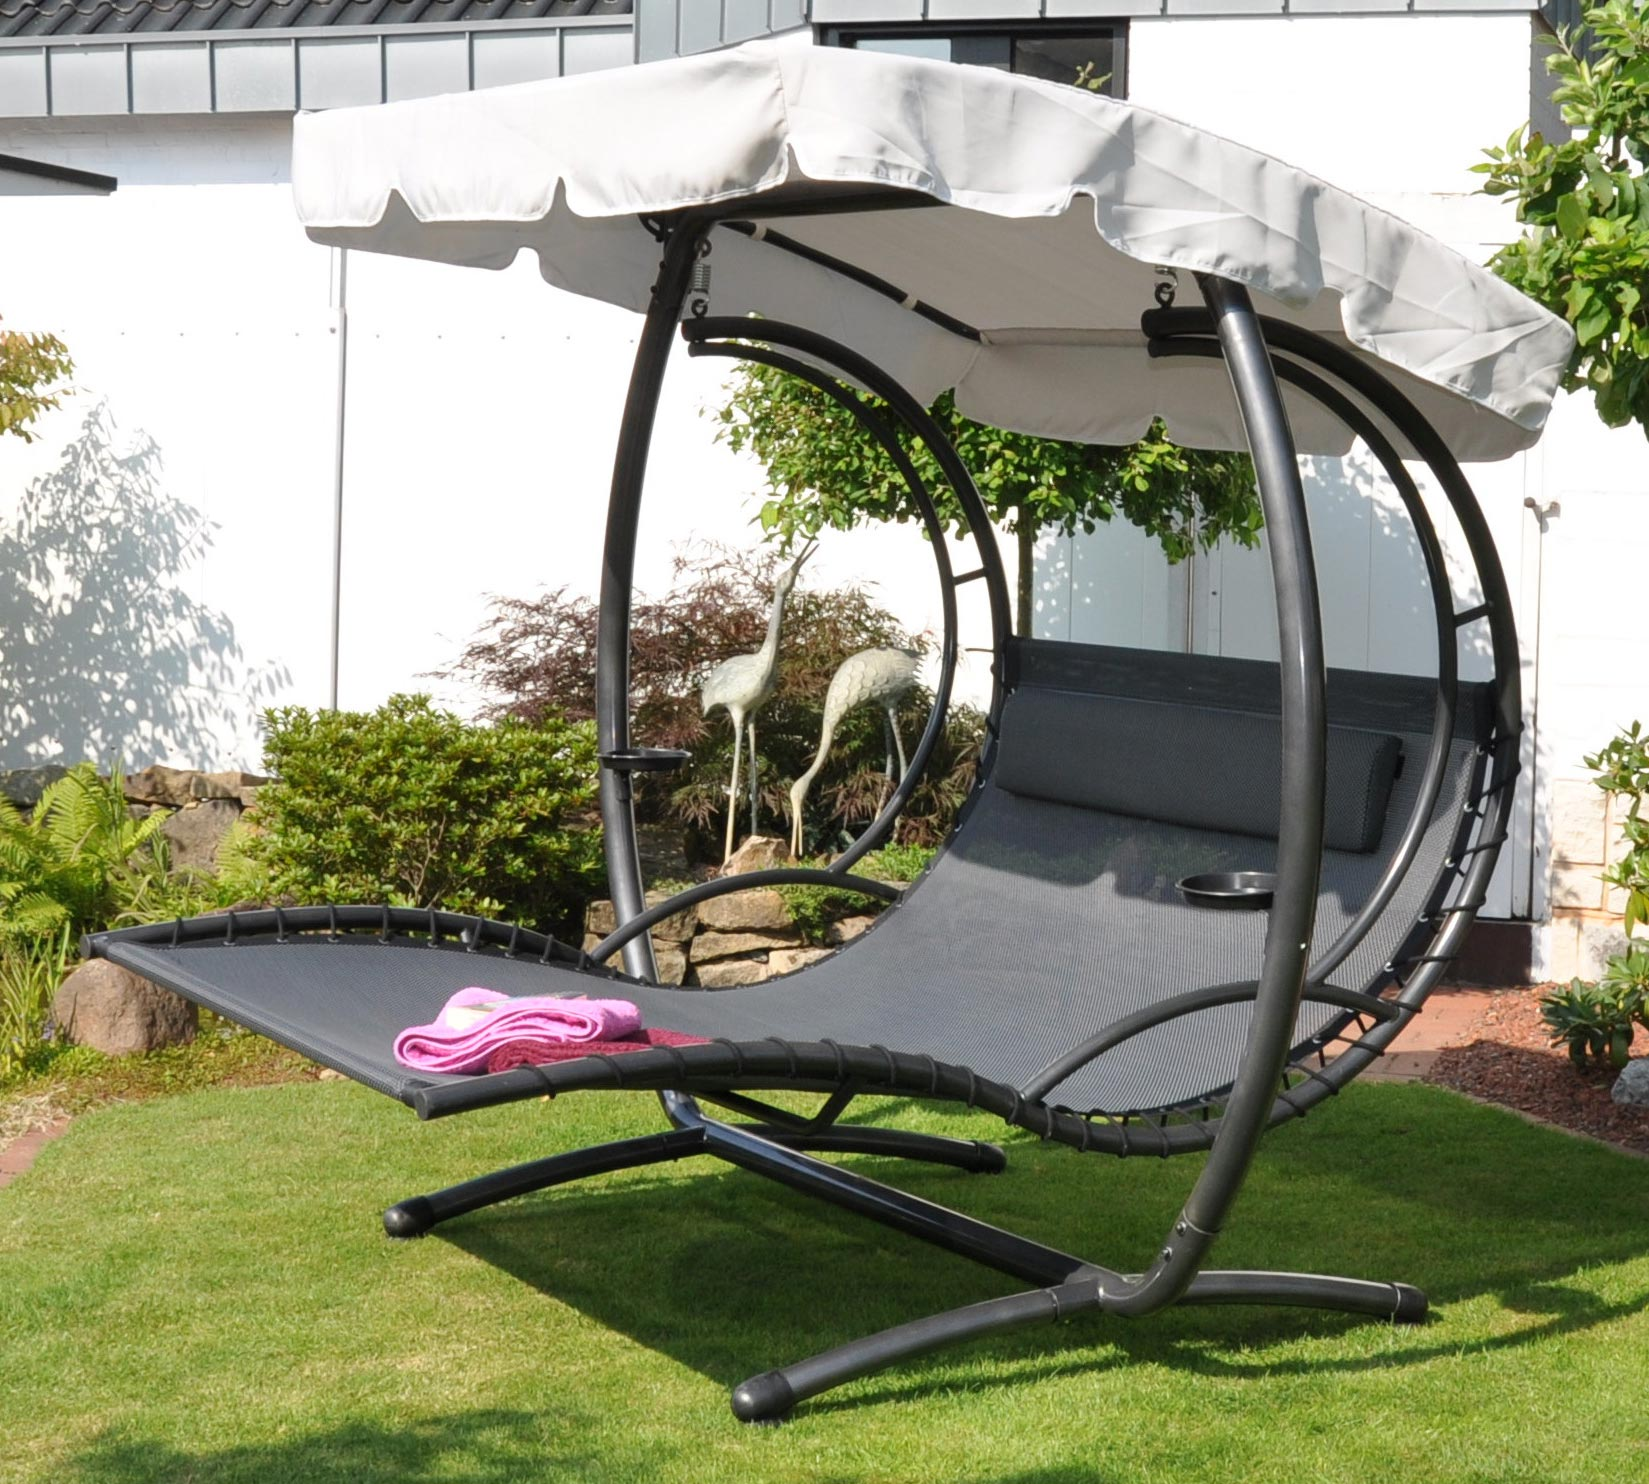 doppel gartenliege duo swing xxl stahl schwarz mit. Black Bedroom Furniture Sets. Home Design Ideas